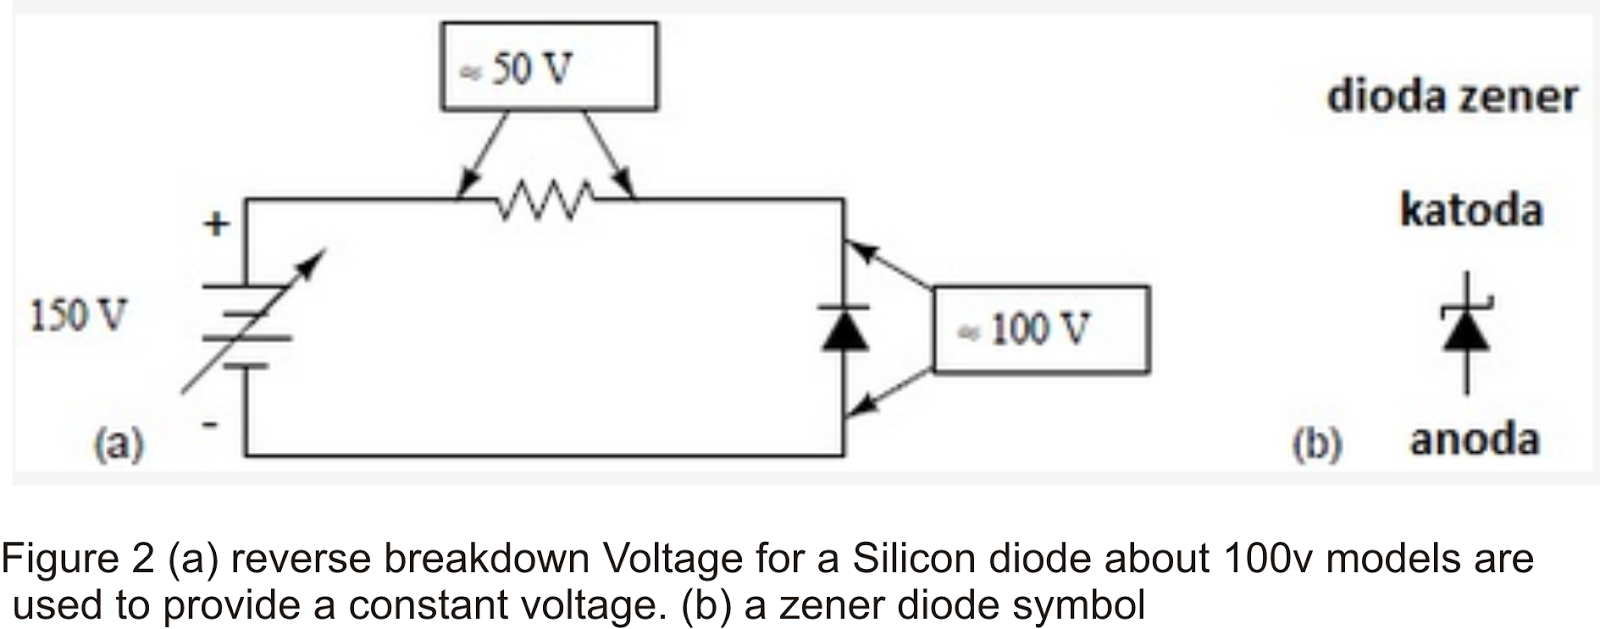 Zener Diodes Vian Lintin Diode Circuits Note The Placement Of A Silicon In Figure 2a These Are Conditioned Order To Experience Reverse Bias